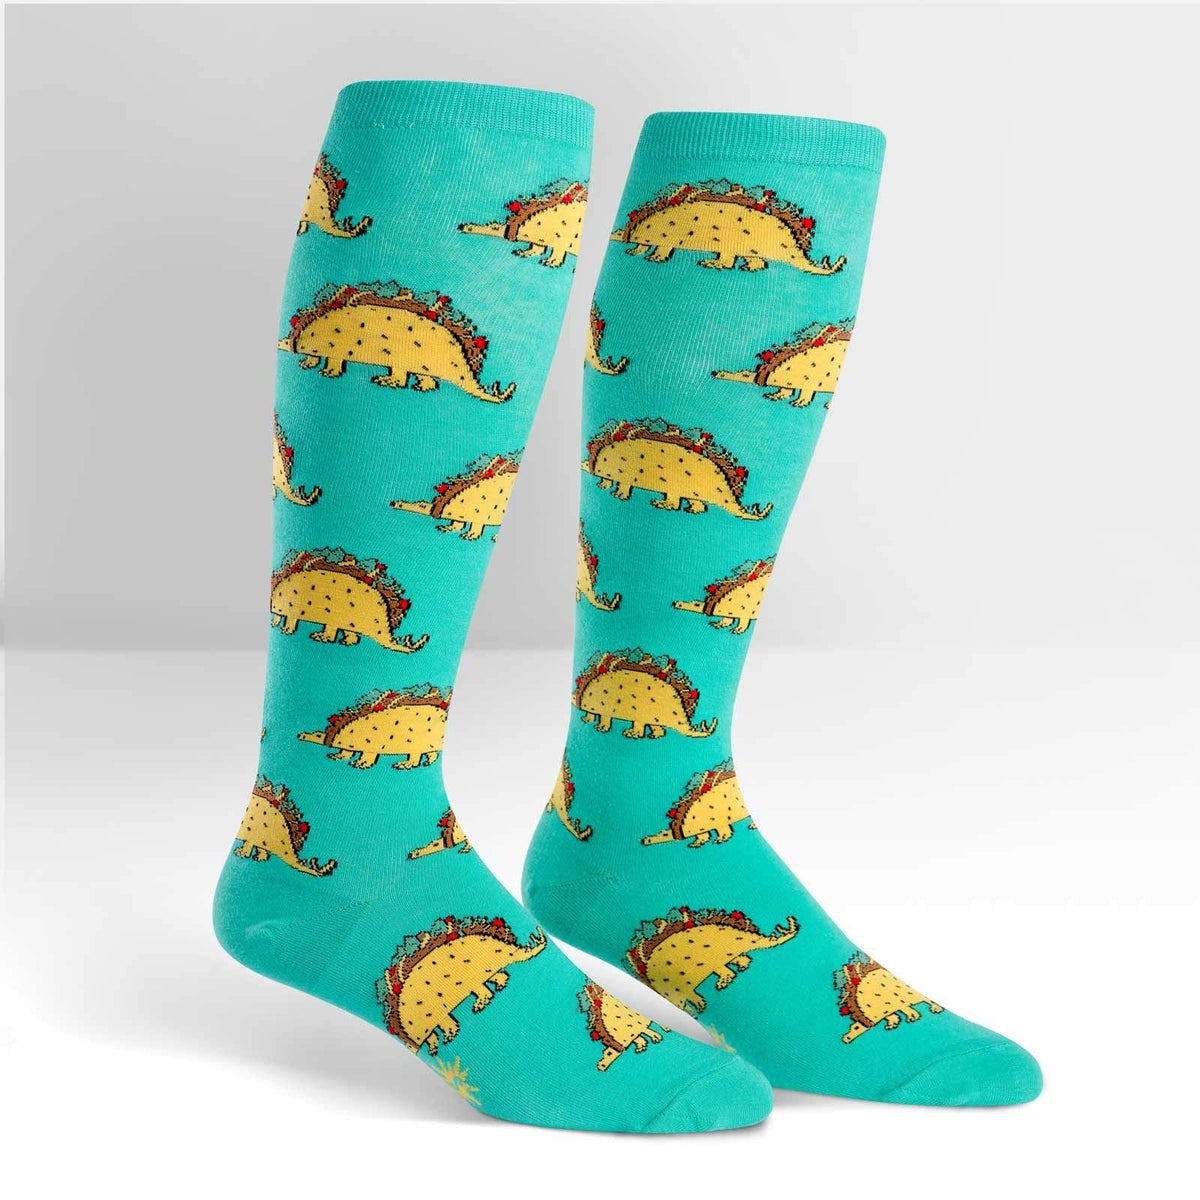 Taco-Saurus Socks Women's Knee High Sock Regular / Teal